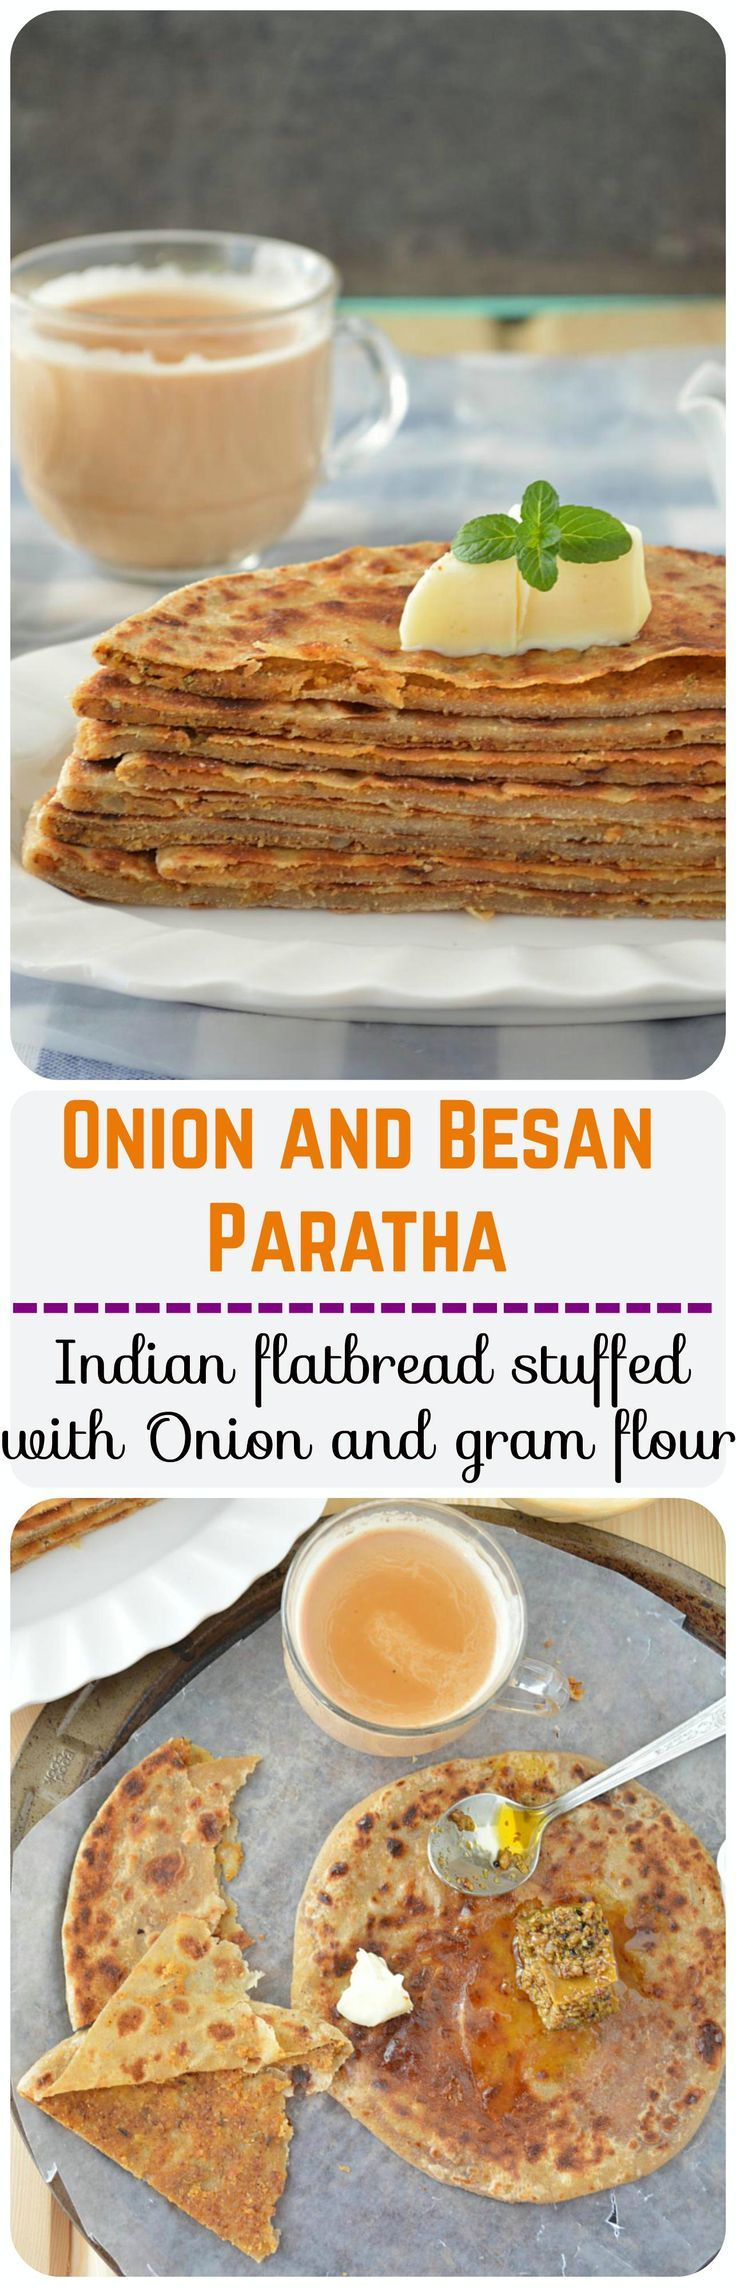 A perfect way to start your morning - crispy and yummy onion and besan ka paratha. These parathas are a complete meal in itself, pair them up with pickles and are sufficient enough to fuel you up for the rest of your day!!